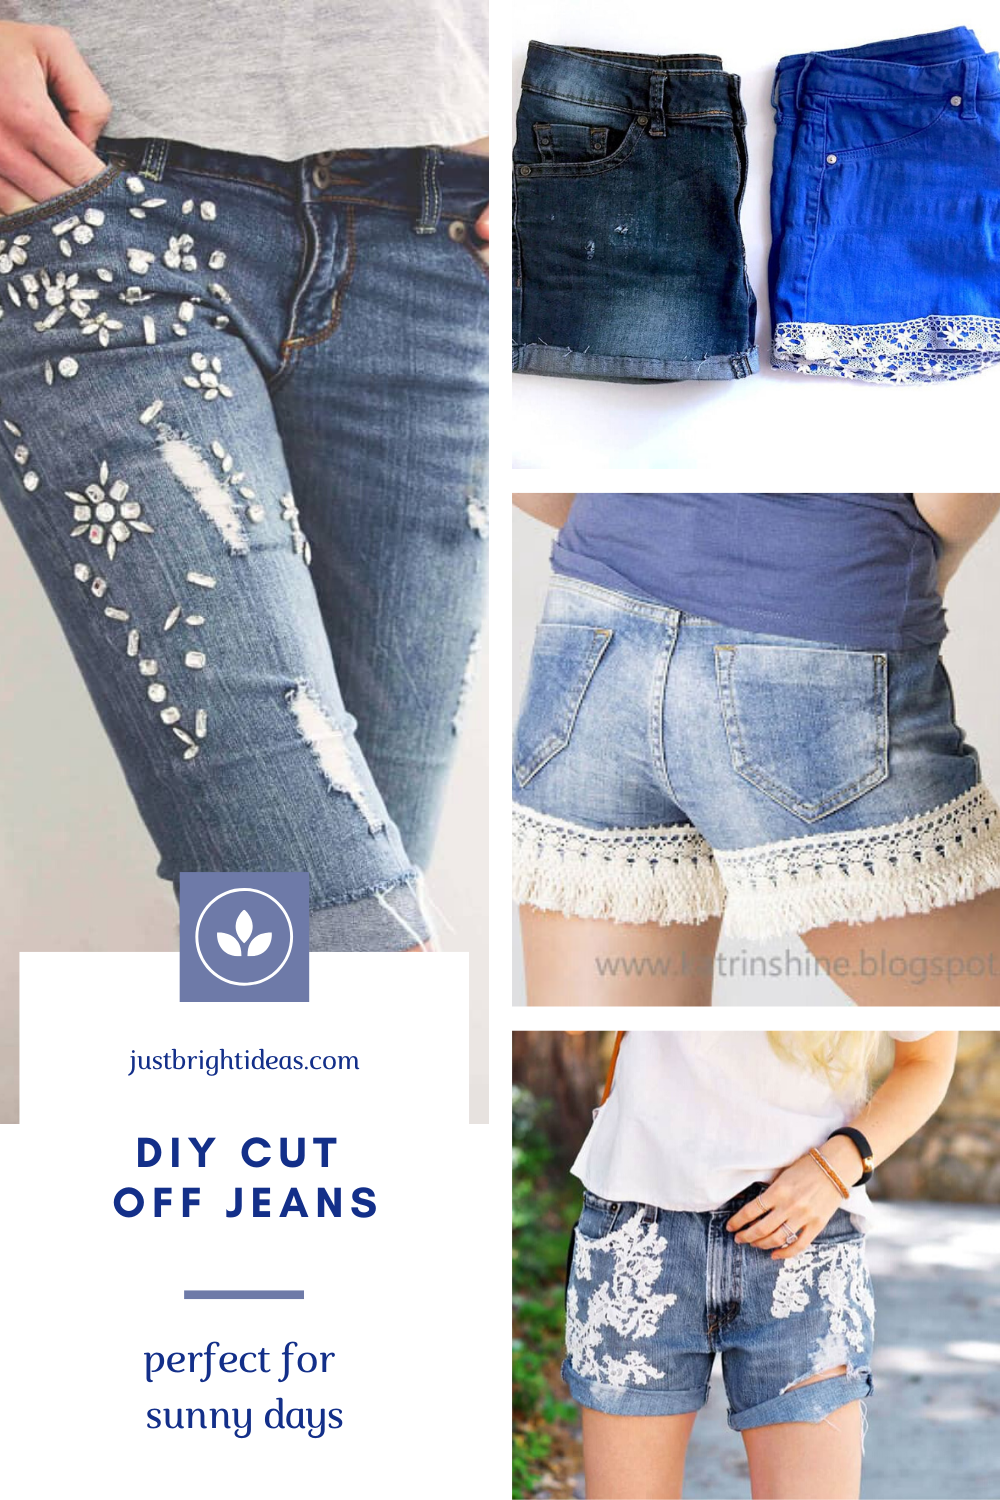 These DIY cut off jeans are perfect for sunny days.